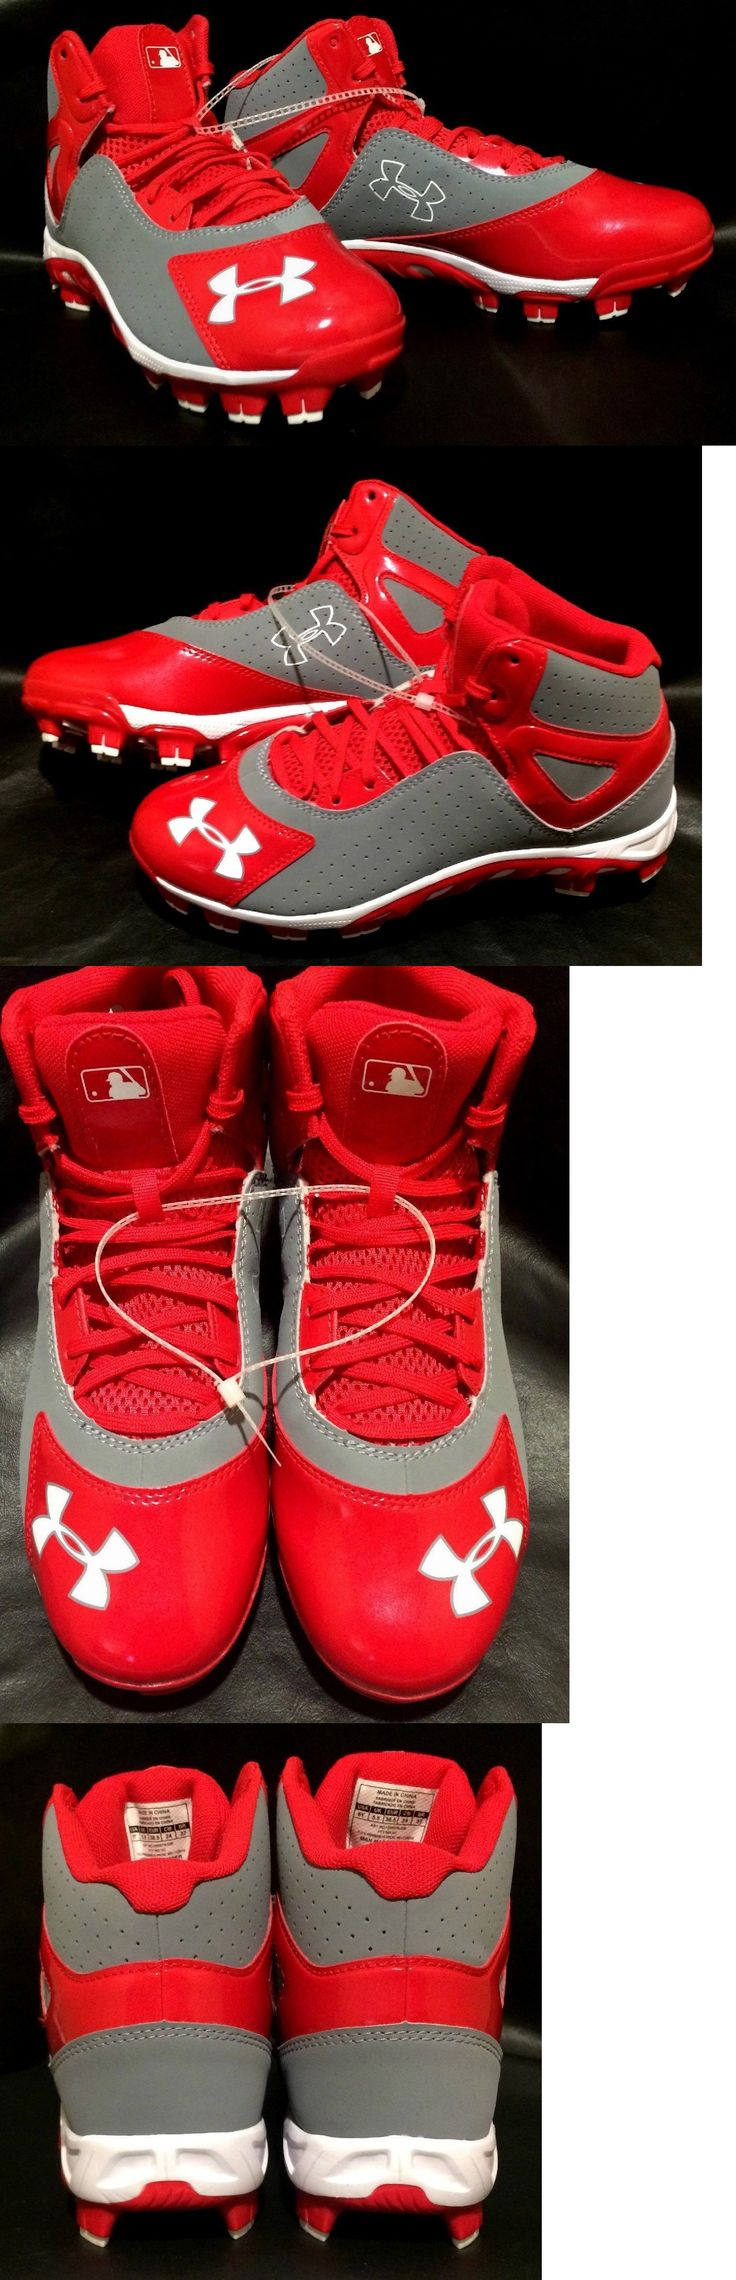 Youth 159061: Under Armour Youth Baseball Cleats 3/4 High Top Size 5.5Y Red/Gray -> BUY IT NOW ONLY: $42.99 on eBay!